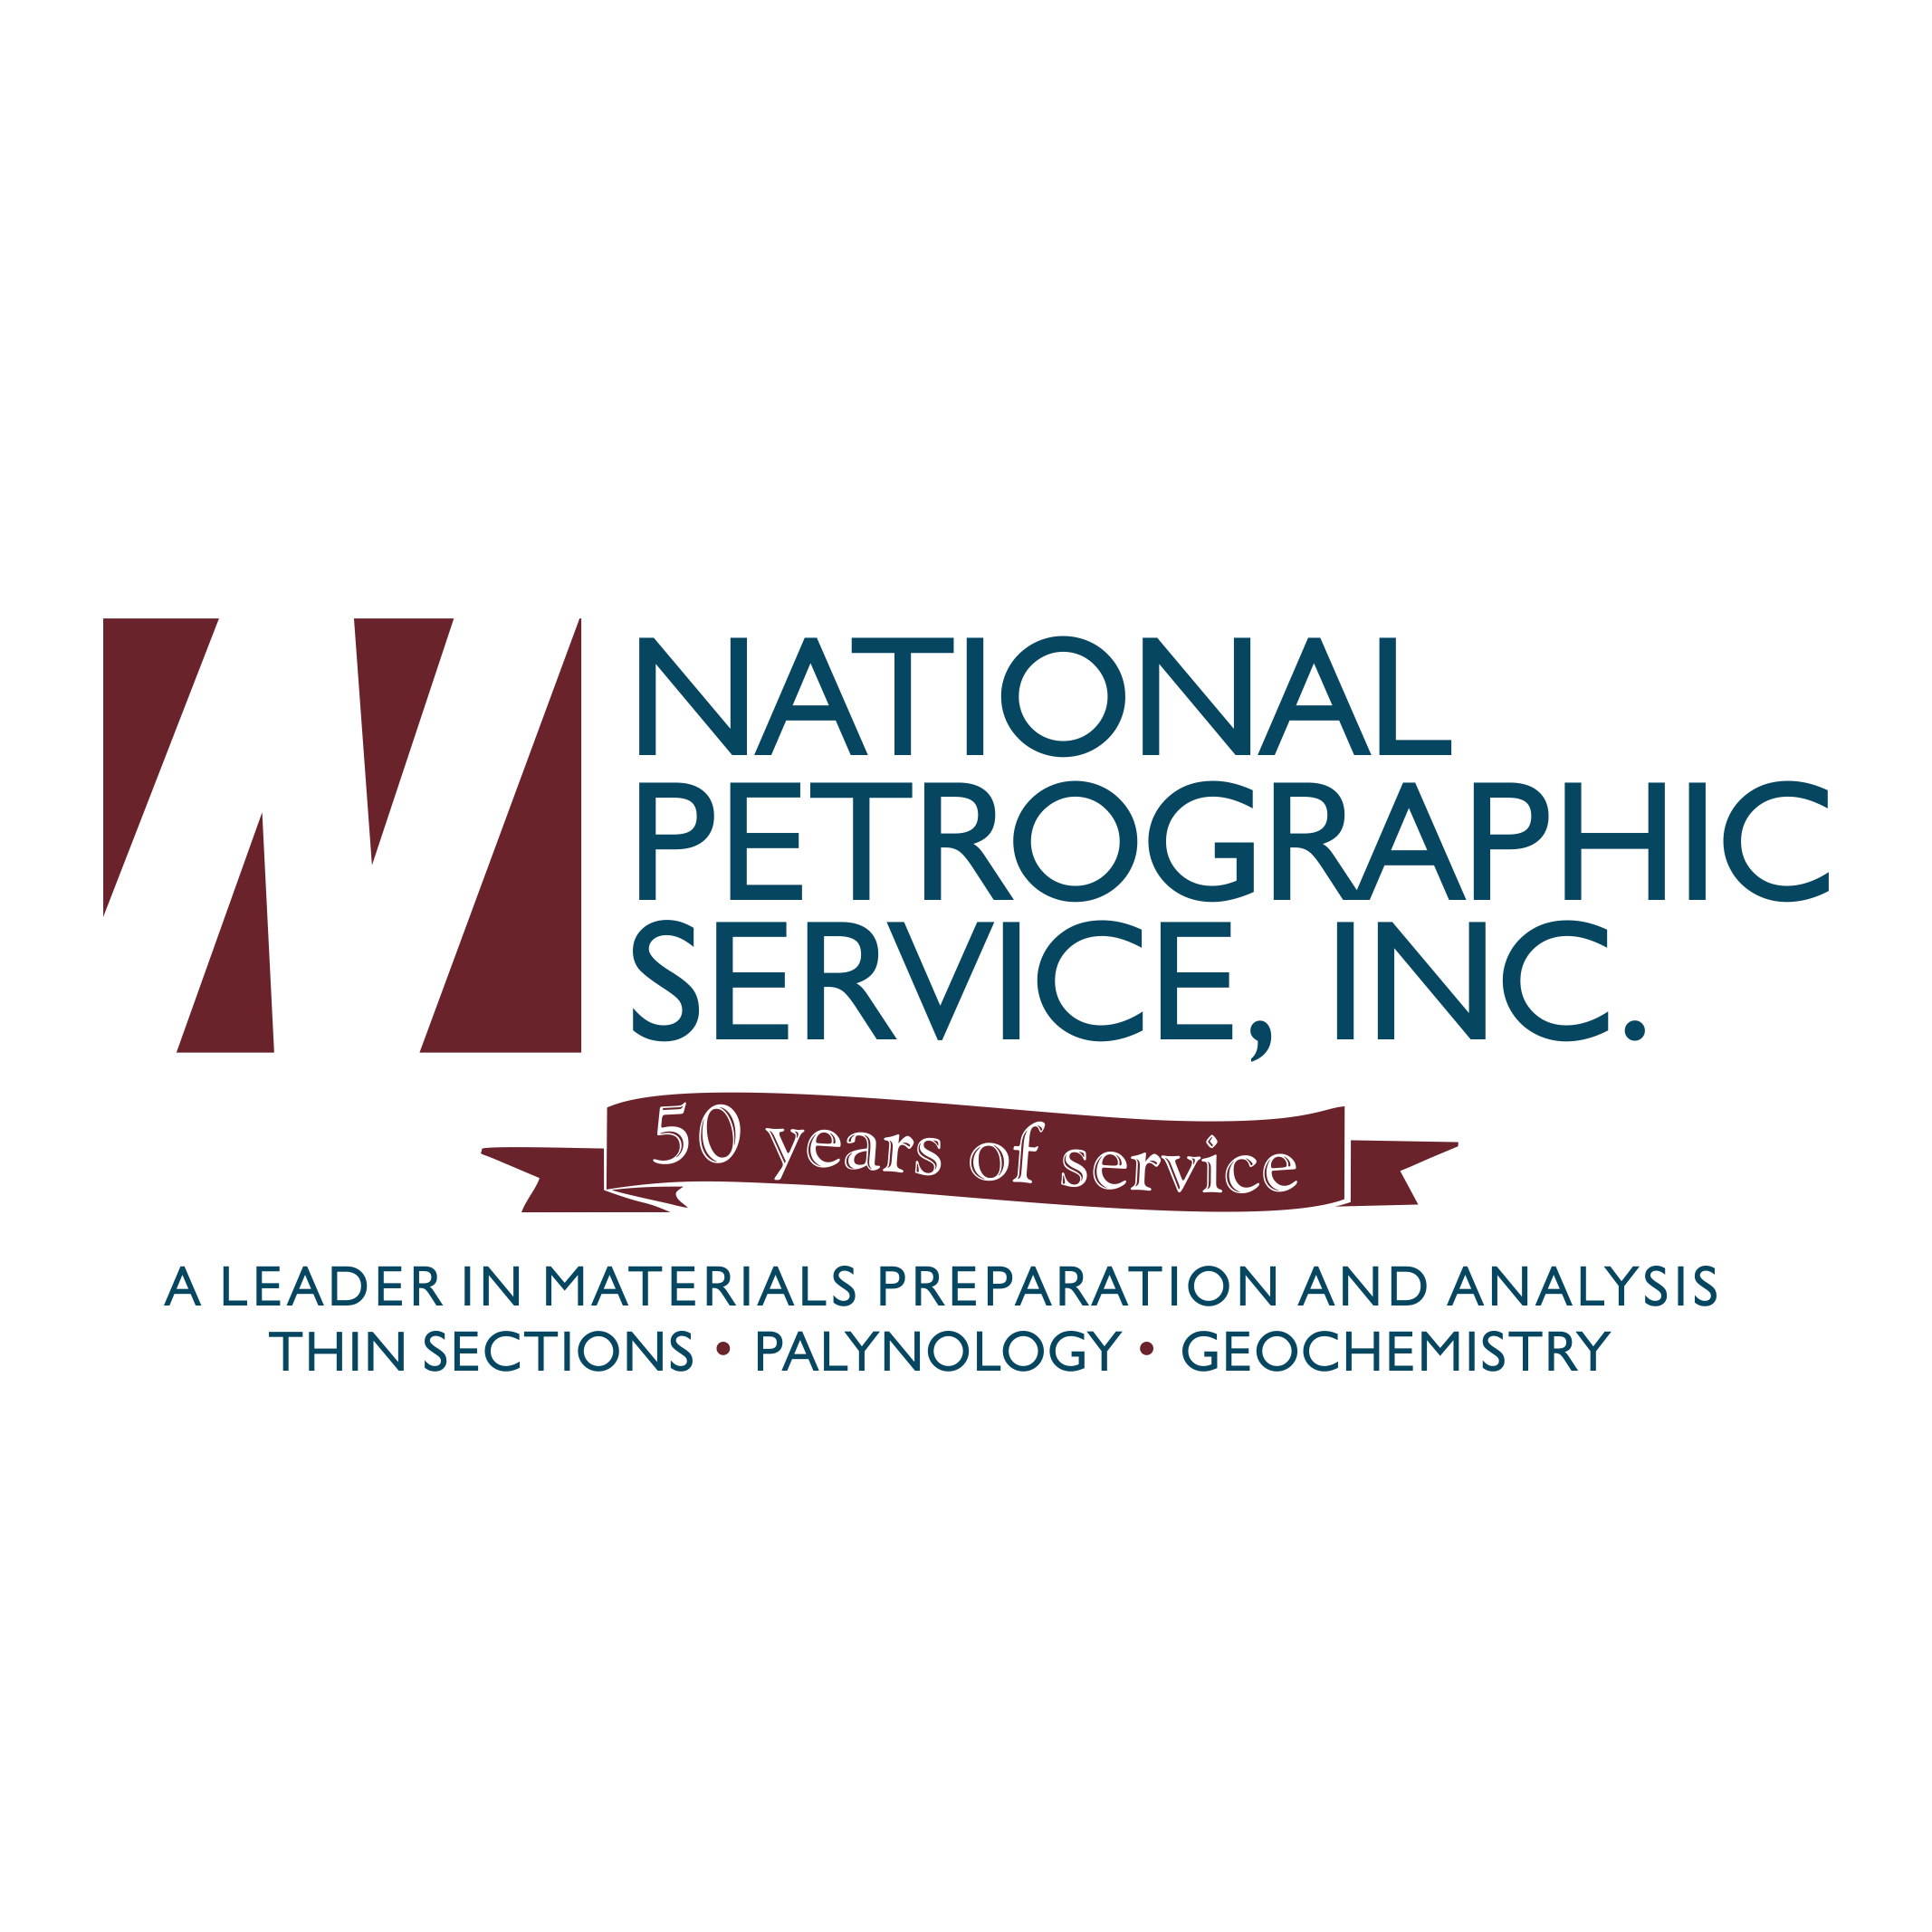 National Petrographic Service